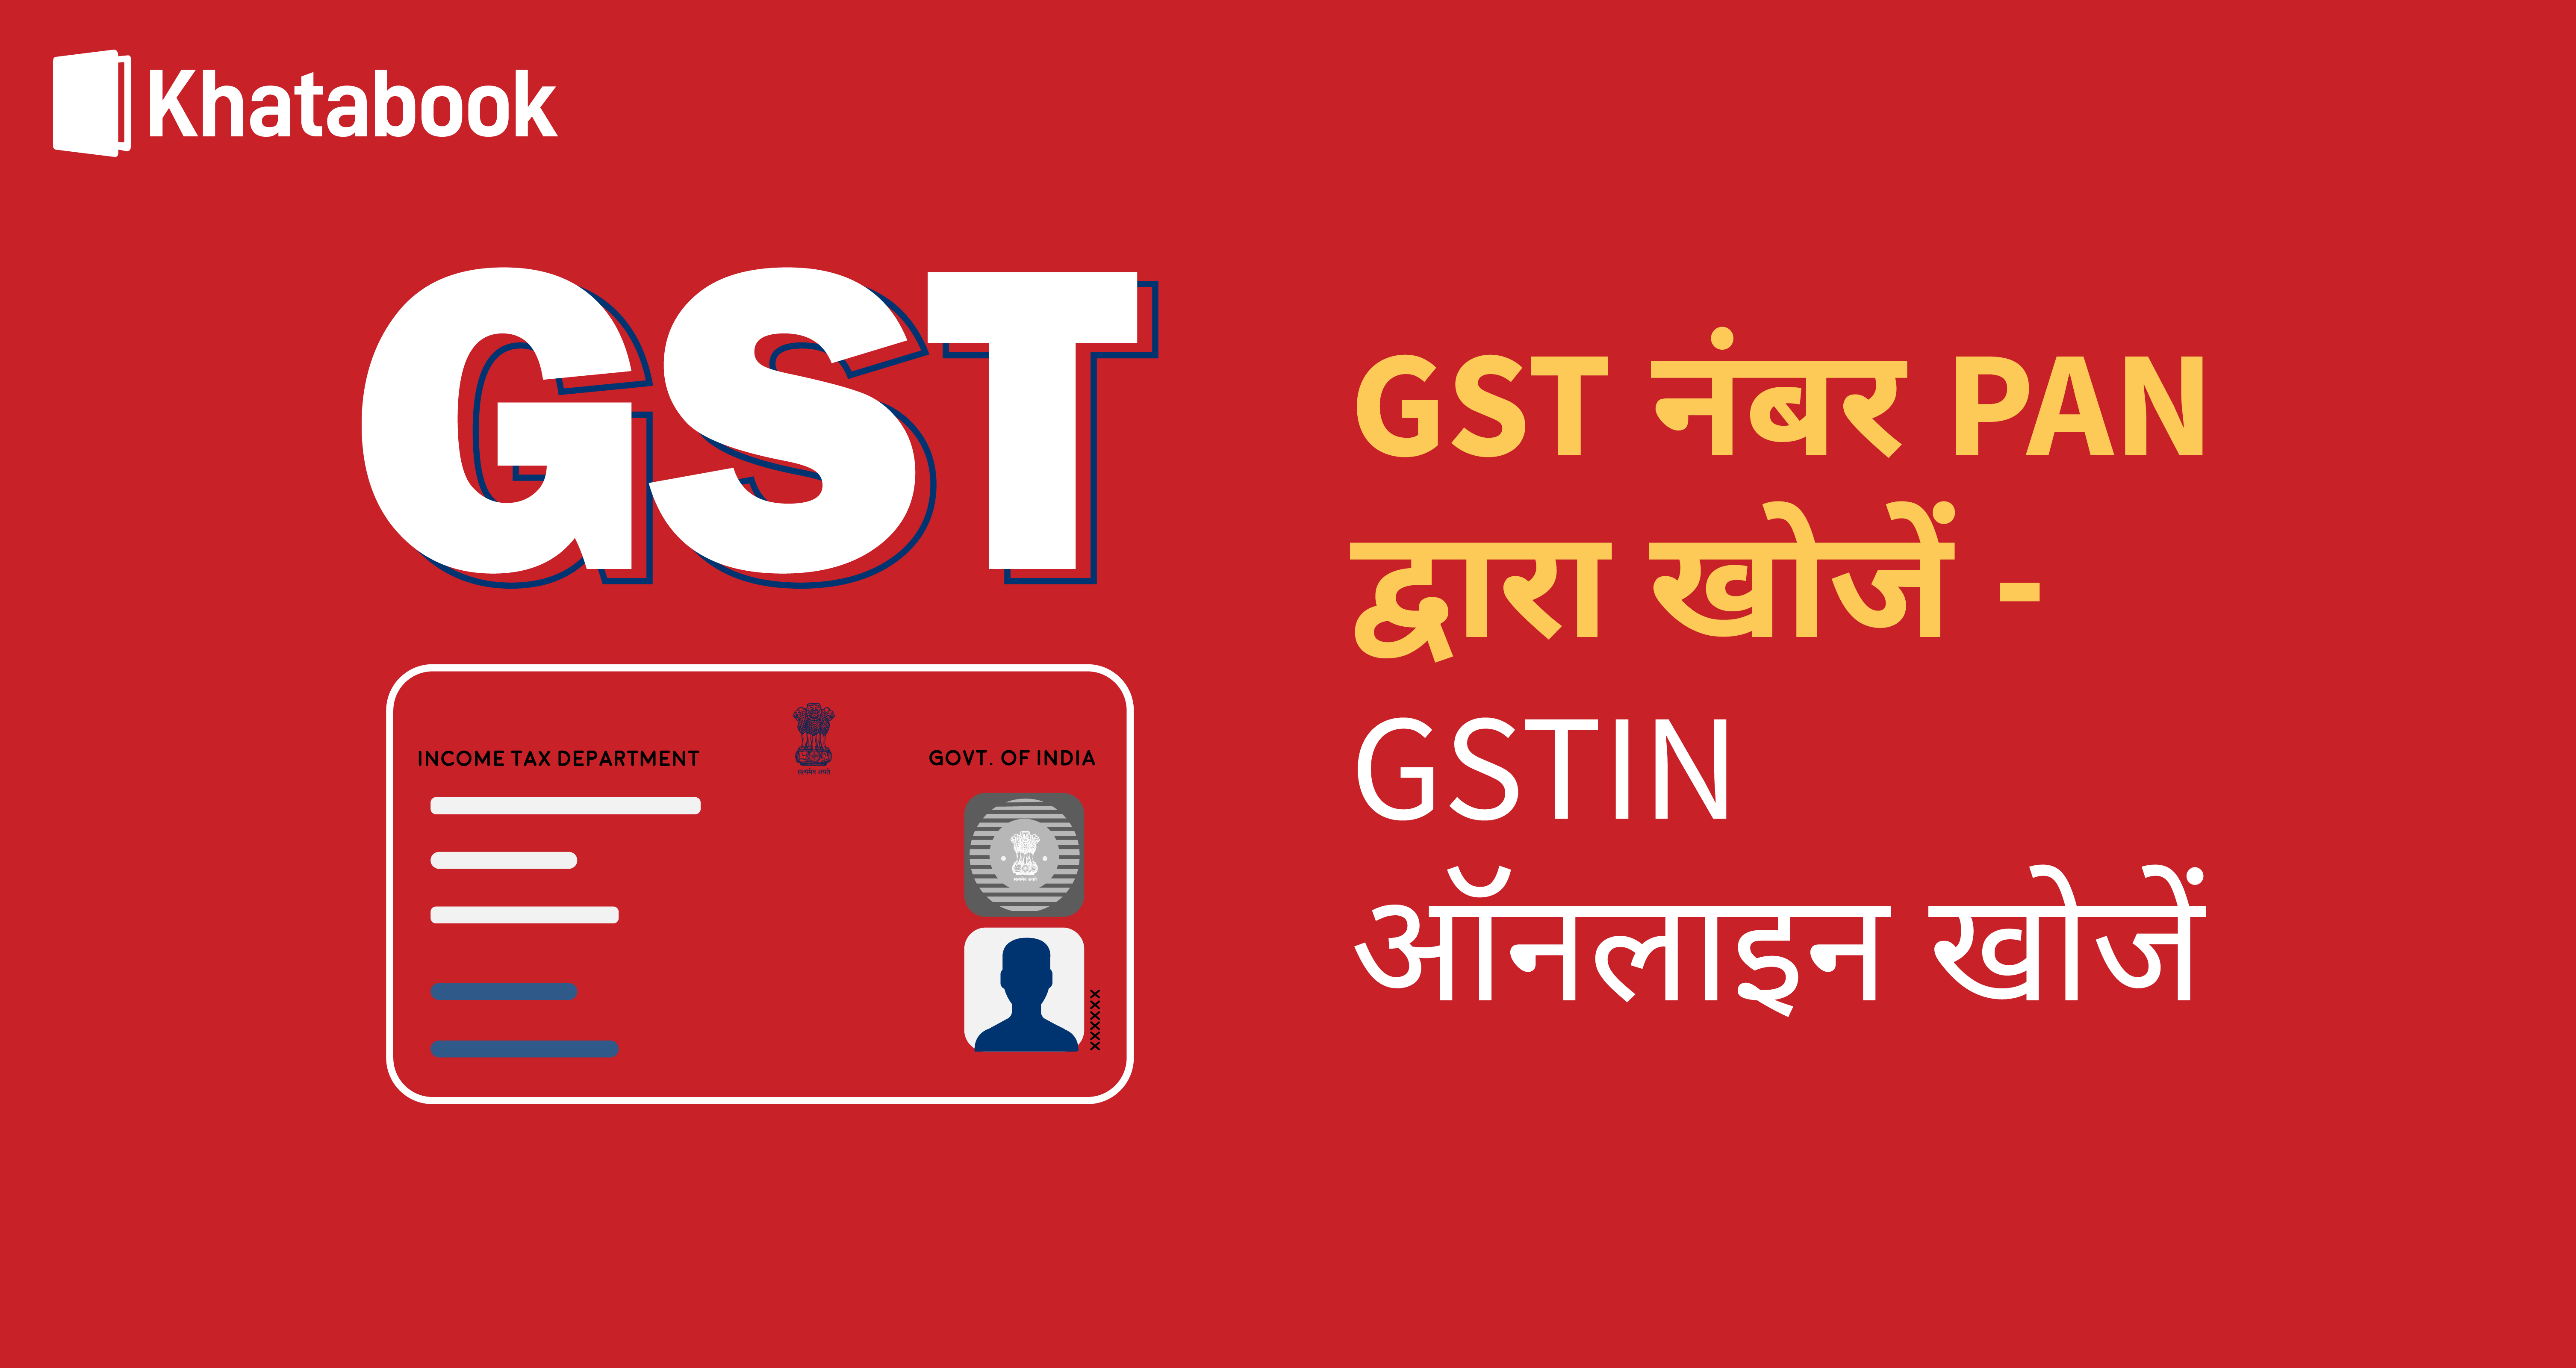 Pan-GST Number